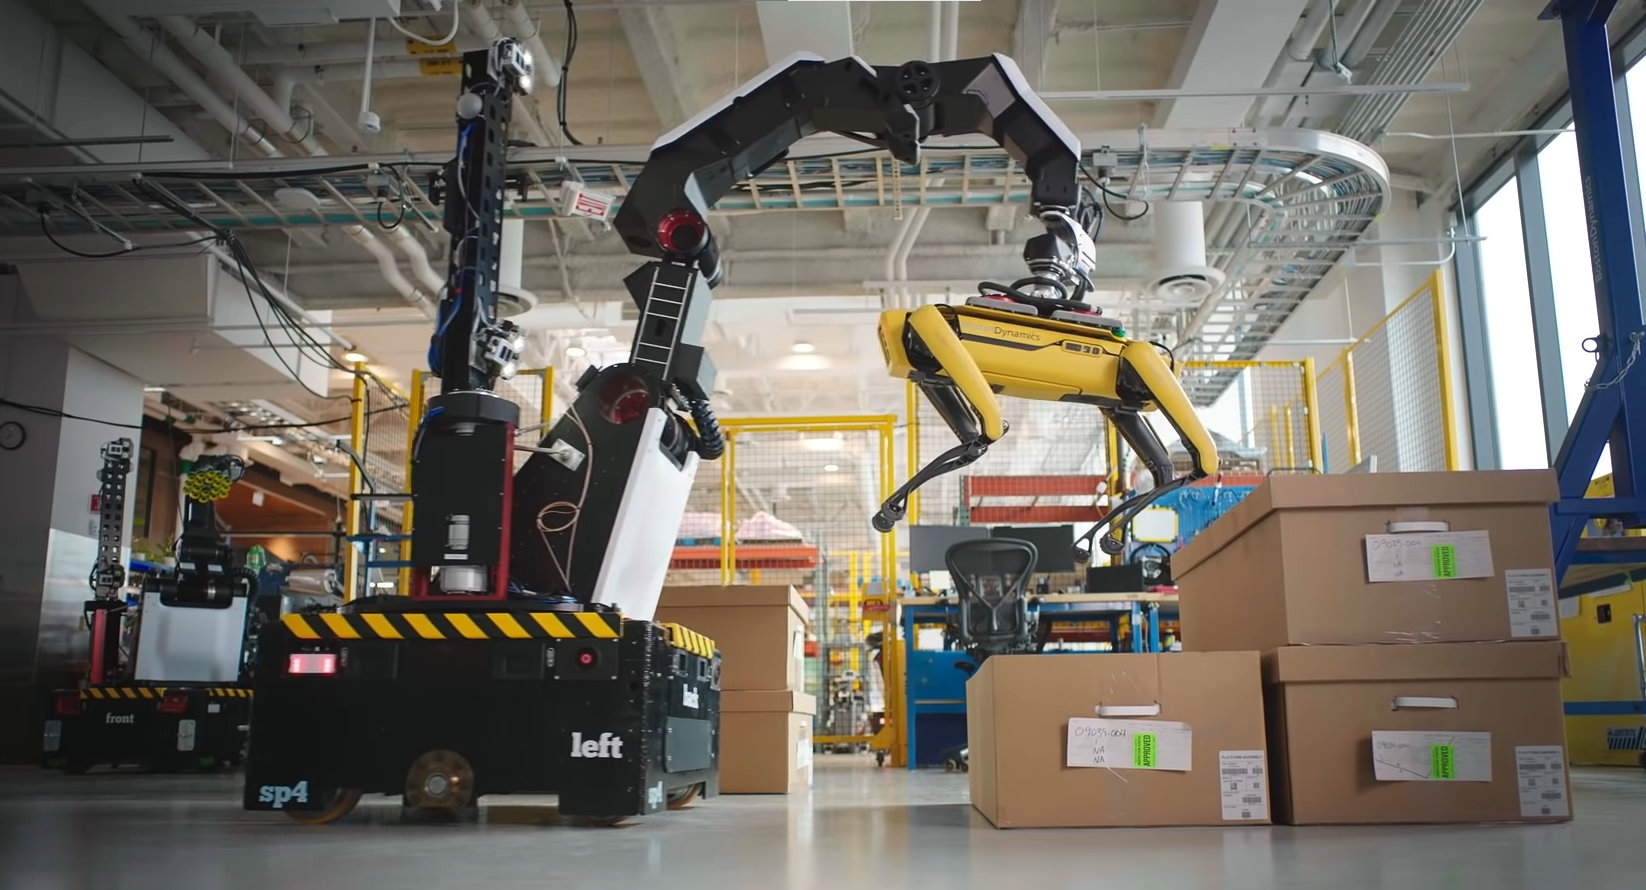 Boston Dynamics innovates robots that will boost the efficiency of logistics warehouses